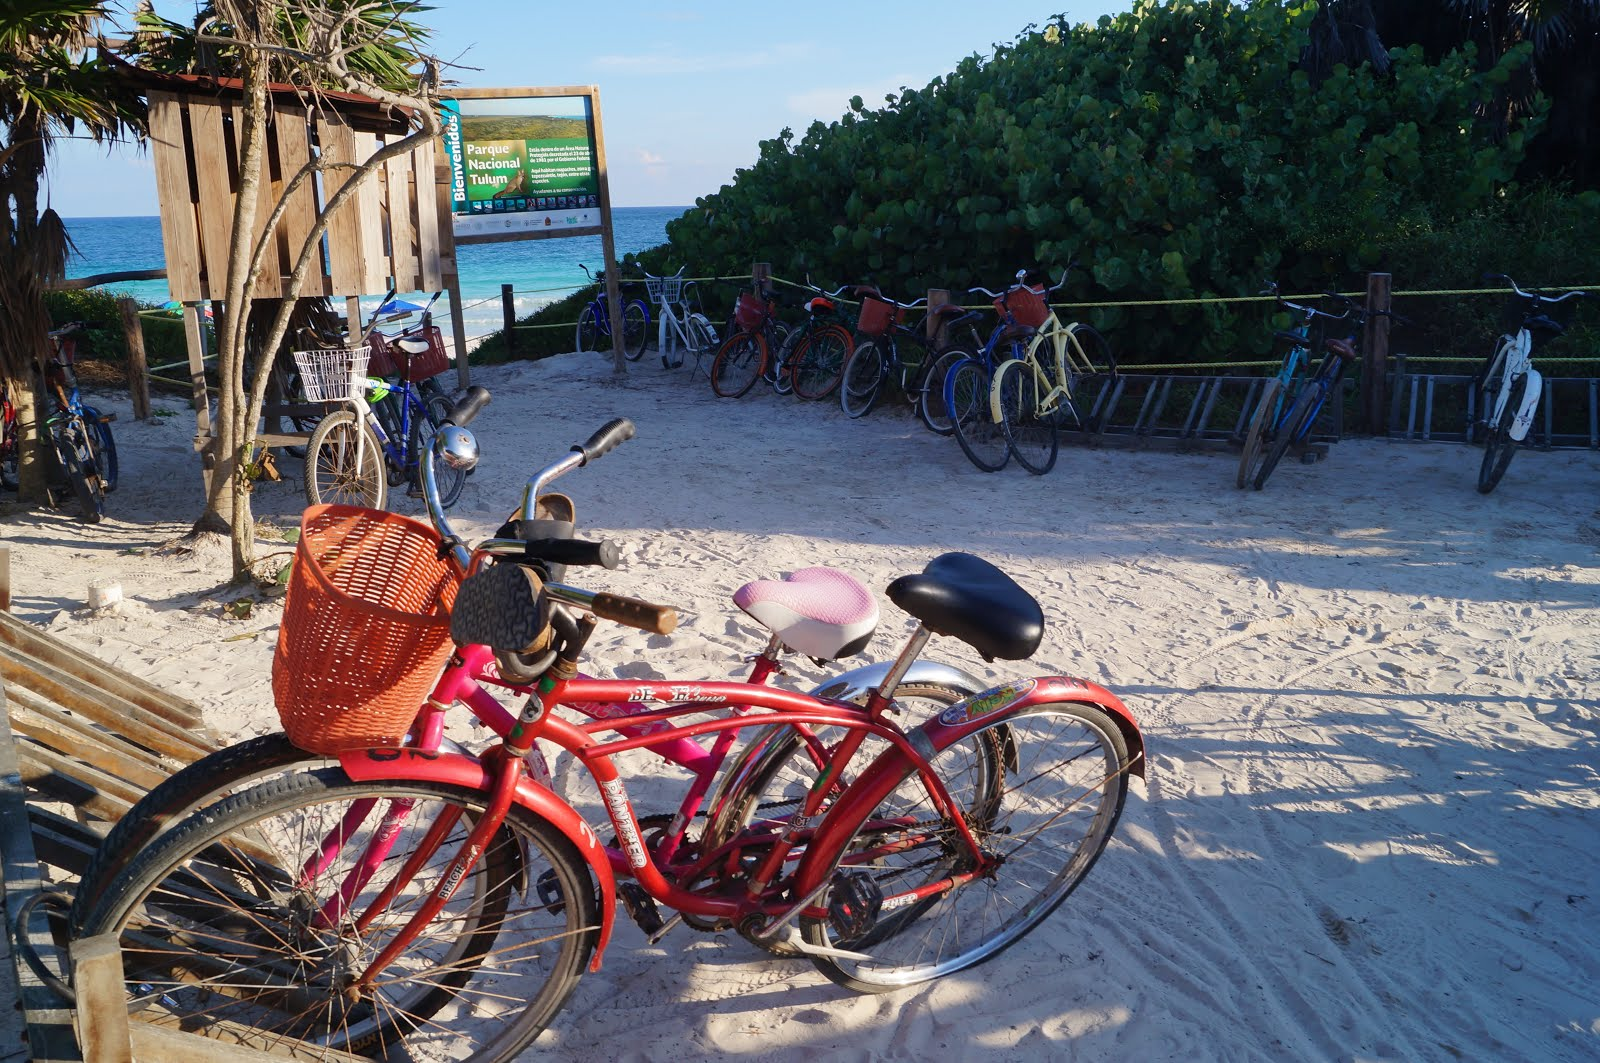 Rented bicycles entering beach in Tulum